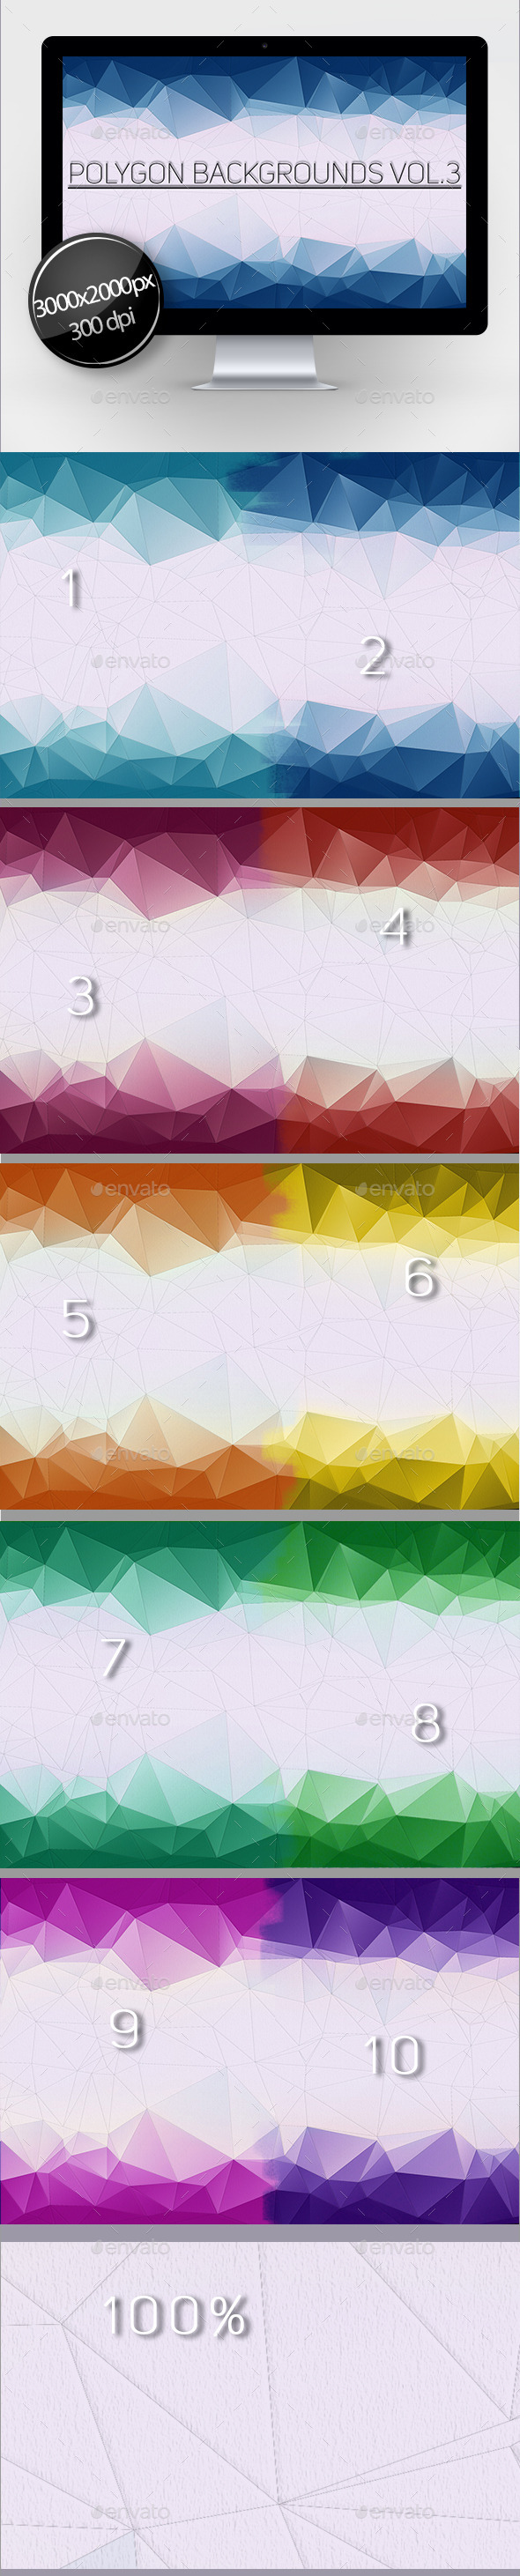 Polygon Backgrounds Vol.3 - Abstract Backgrounds